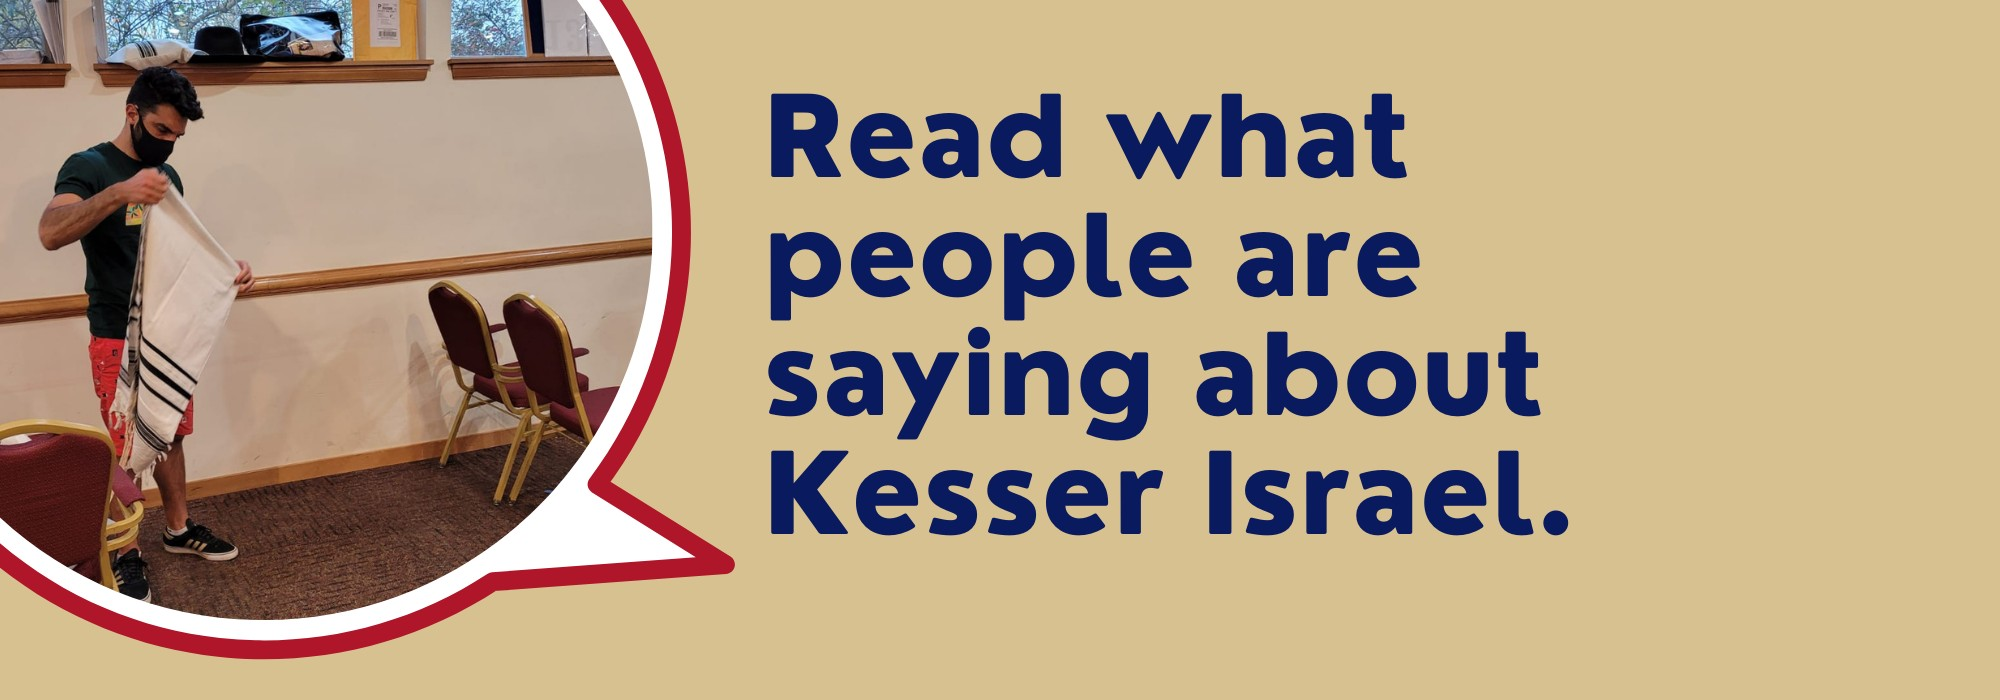 """<a href=""""https://www.kesserisrael.org/testimonials""""                                     target="""""""">                                                                 <span class=""""slider_title"""">                                     Testimonials                                </span>                                                                 </a>                                                                                                                                                                                       <span class=""""slider_description"""">Read what others have to say about their experience at Kesser!</span>                                                                                     <a href=""""https://www.kesserisrael.org/testimonials"""" class=""""slider_link""""                             target="""""""">                             Click Here                            </a>"""